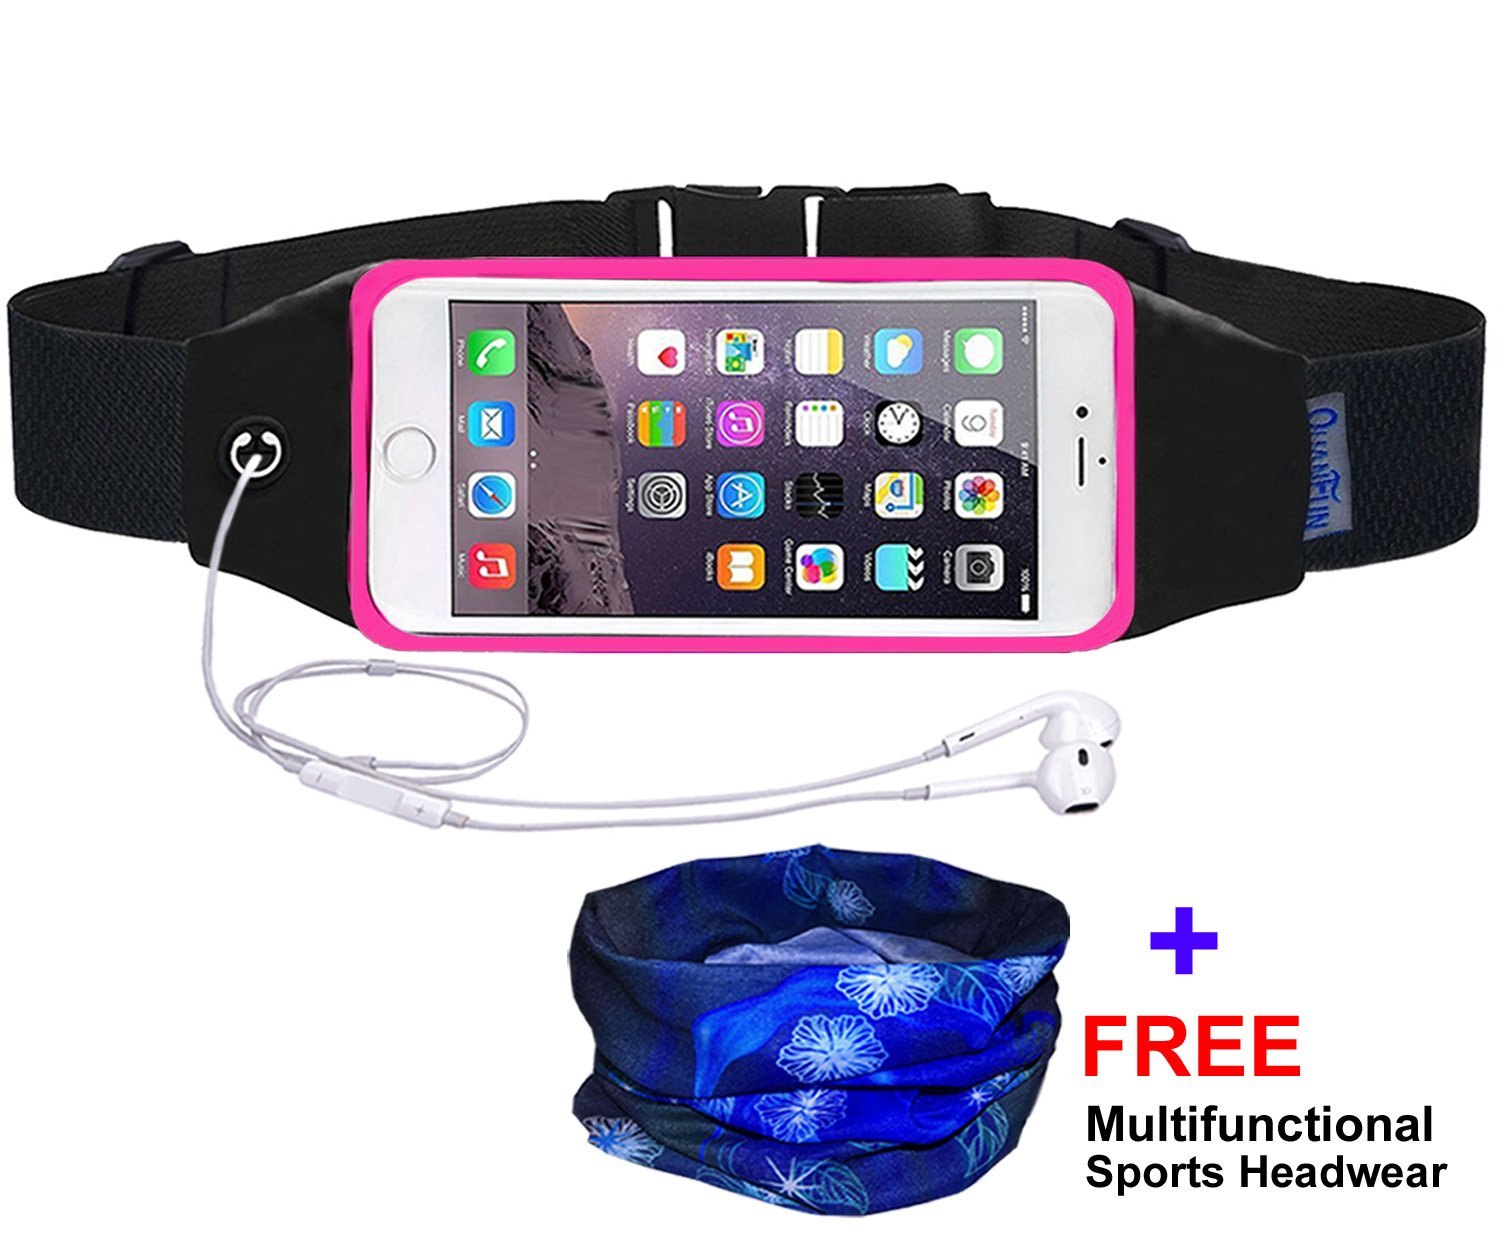 QUANFUN Compatible iPhone X/8 Plus/8/6/6s 7 Plus Running Belt Waist Bag, Fanny Pack Running Wristbands Sports Workout Fitness Holder Pouch Compatible Galaxy s8 s7 Plus,All UP to 6.3'' Cell Phones